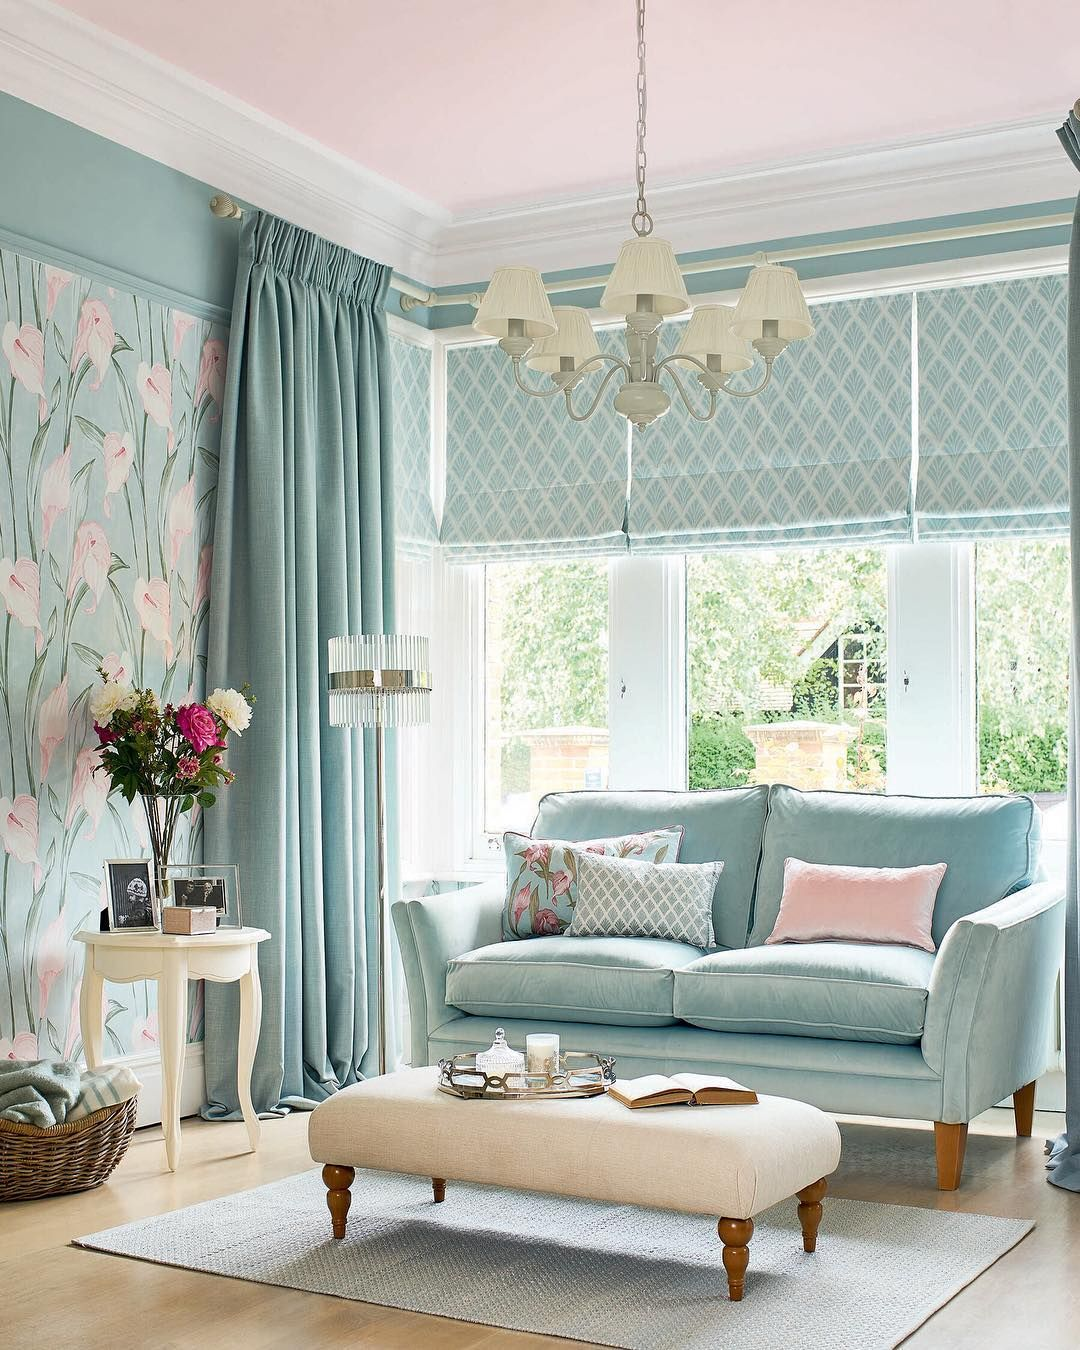 Laura Ashley On Instagram Let Us Help You Transform Your Home With Our Expert Interior Desi In 2020 Living Room Paint Laura Ashley Living Room Beautiful Living Rooms